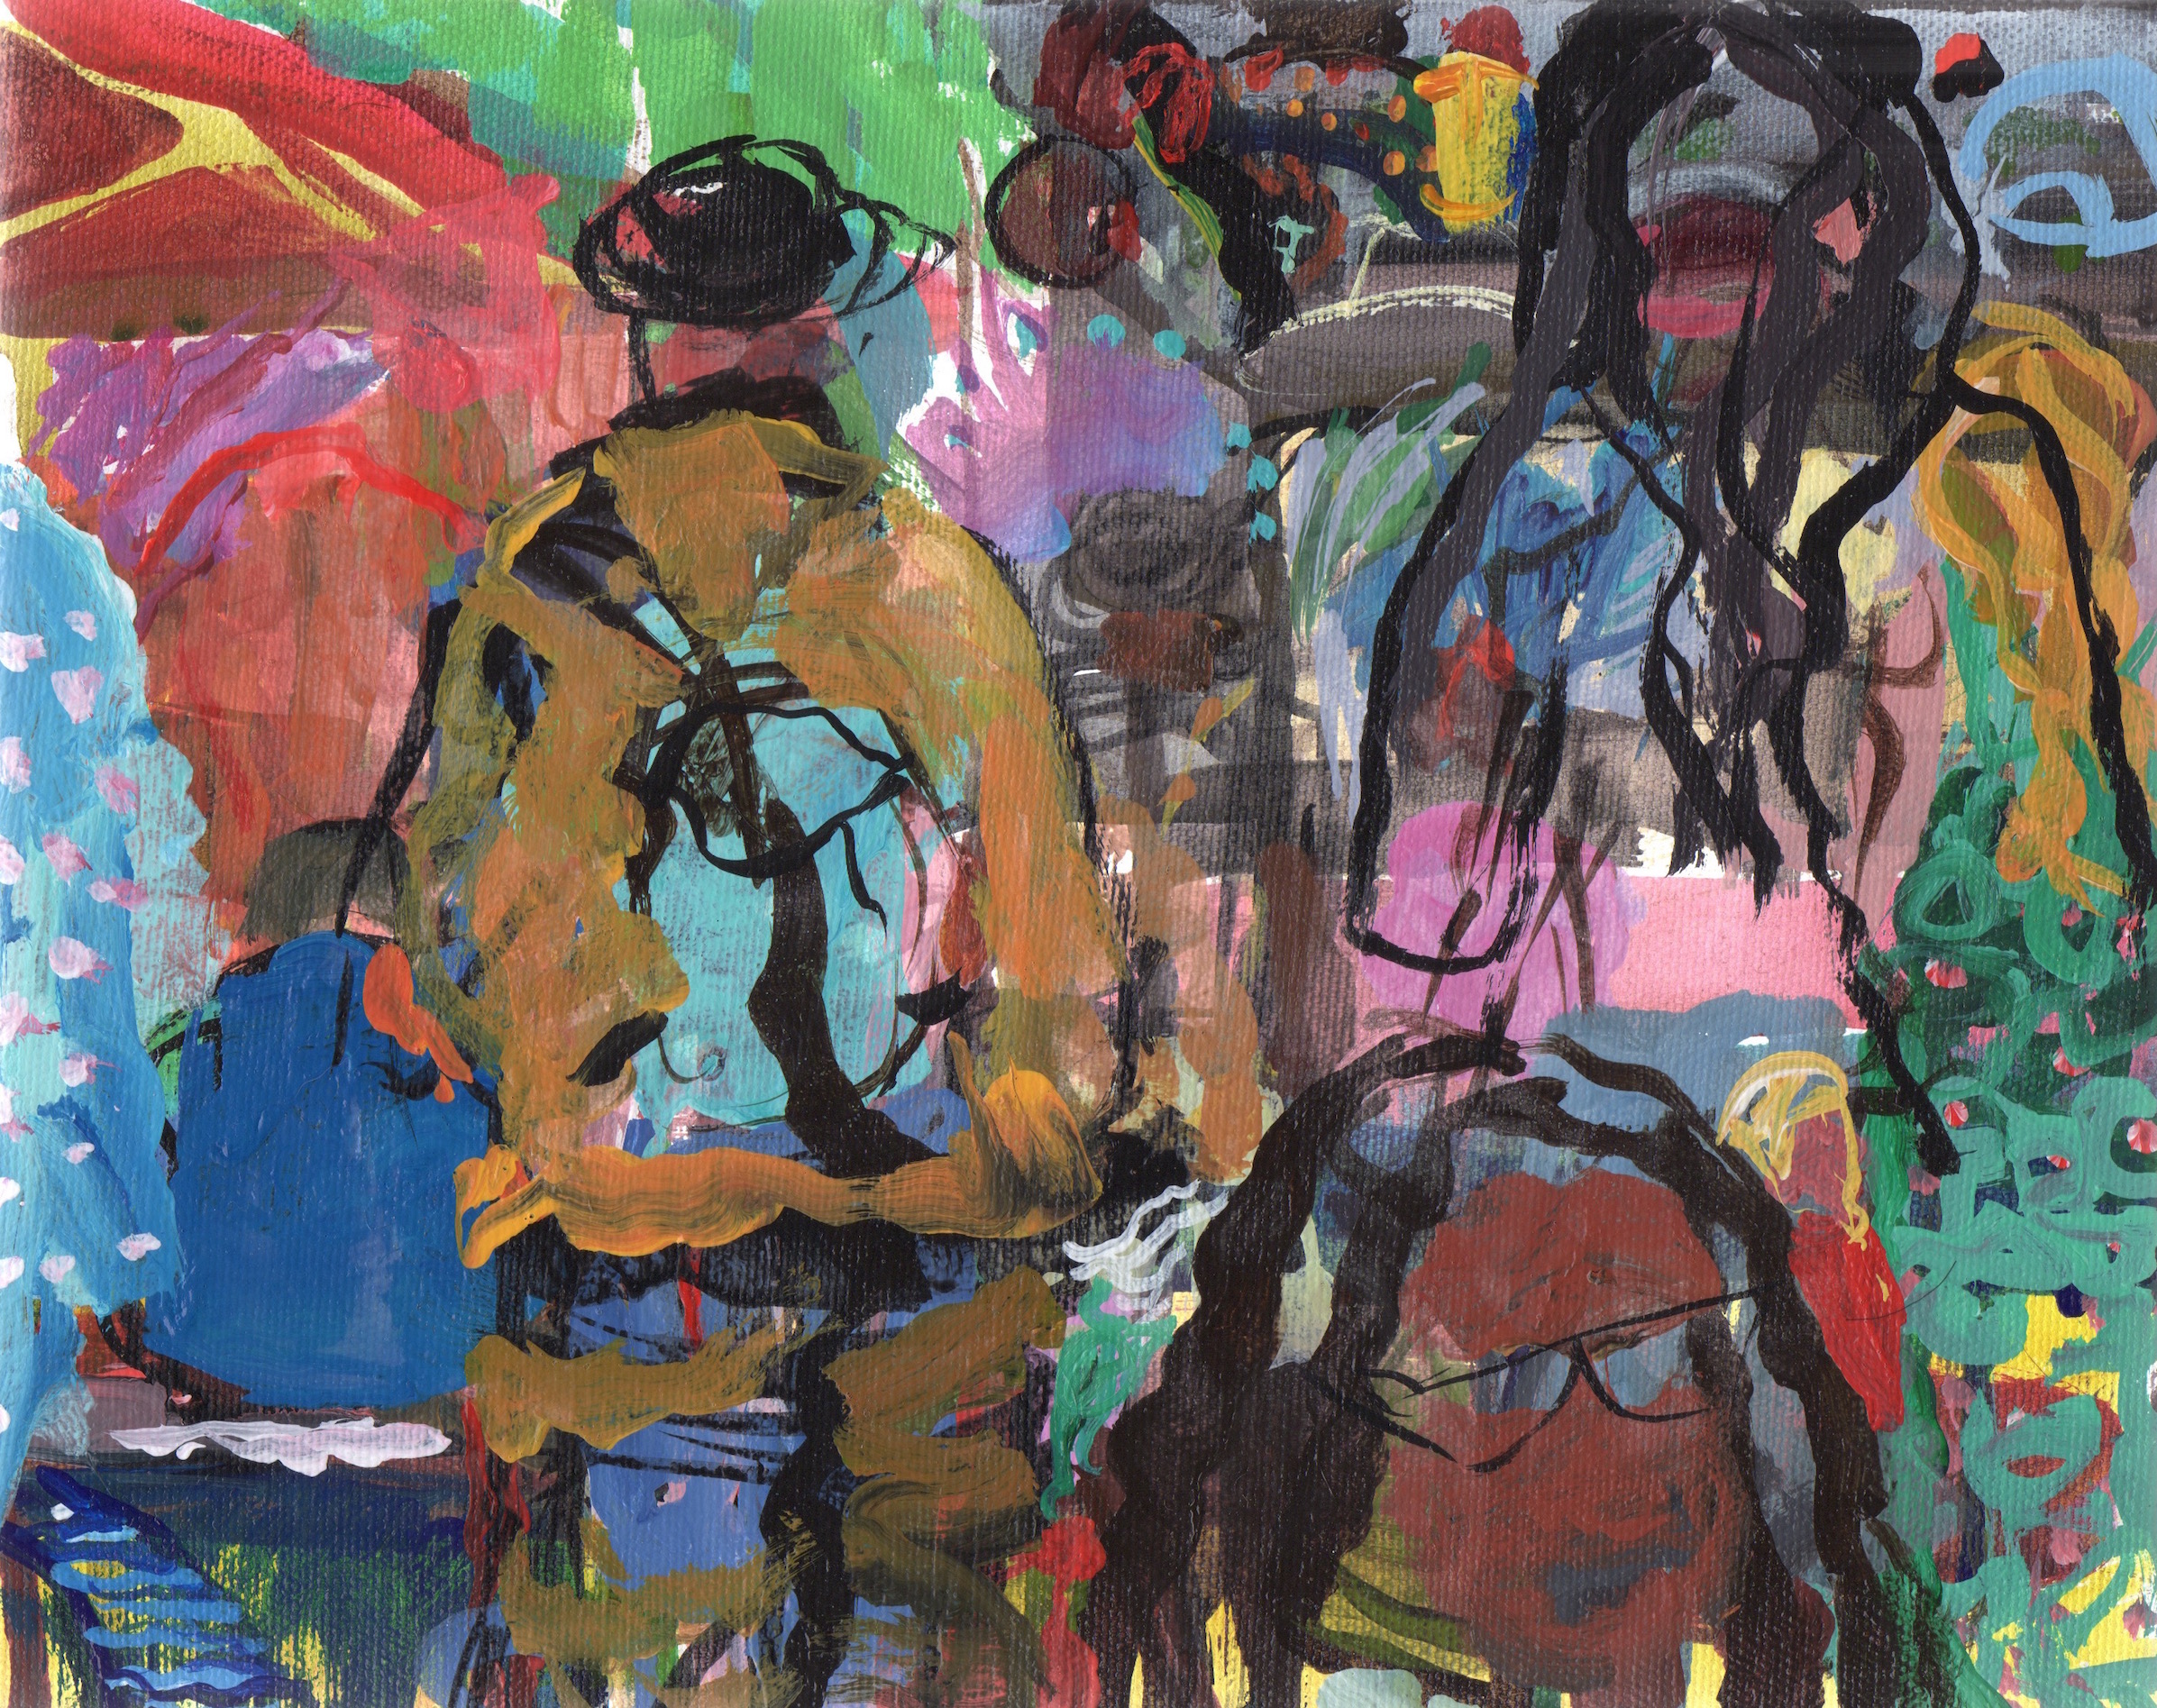 """202 Festival   Sally Kauffman  Acrylic on Canvas  8"""" x 10""""  $450   Click here to Inquire"""